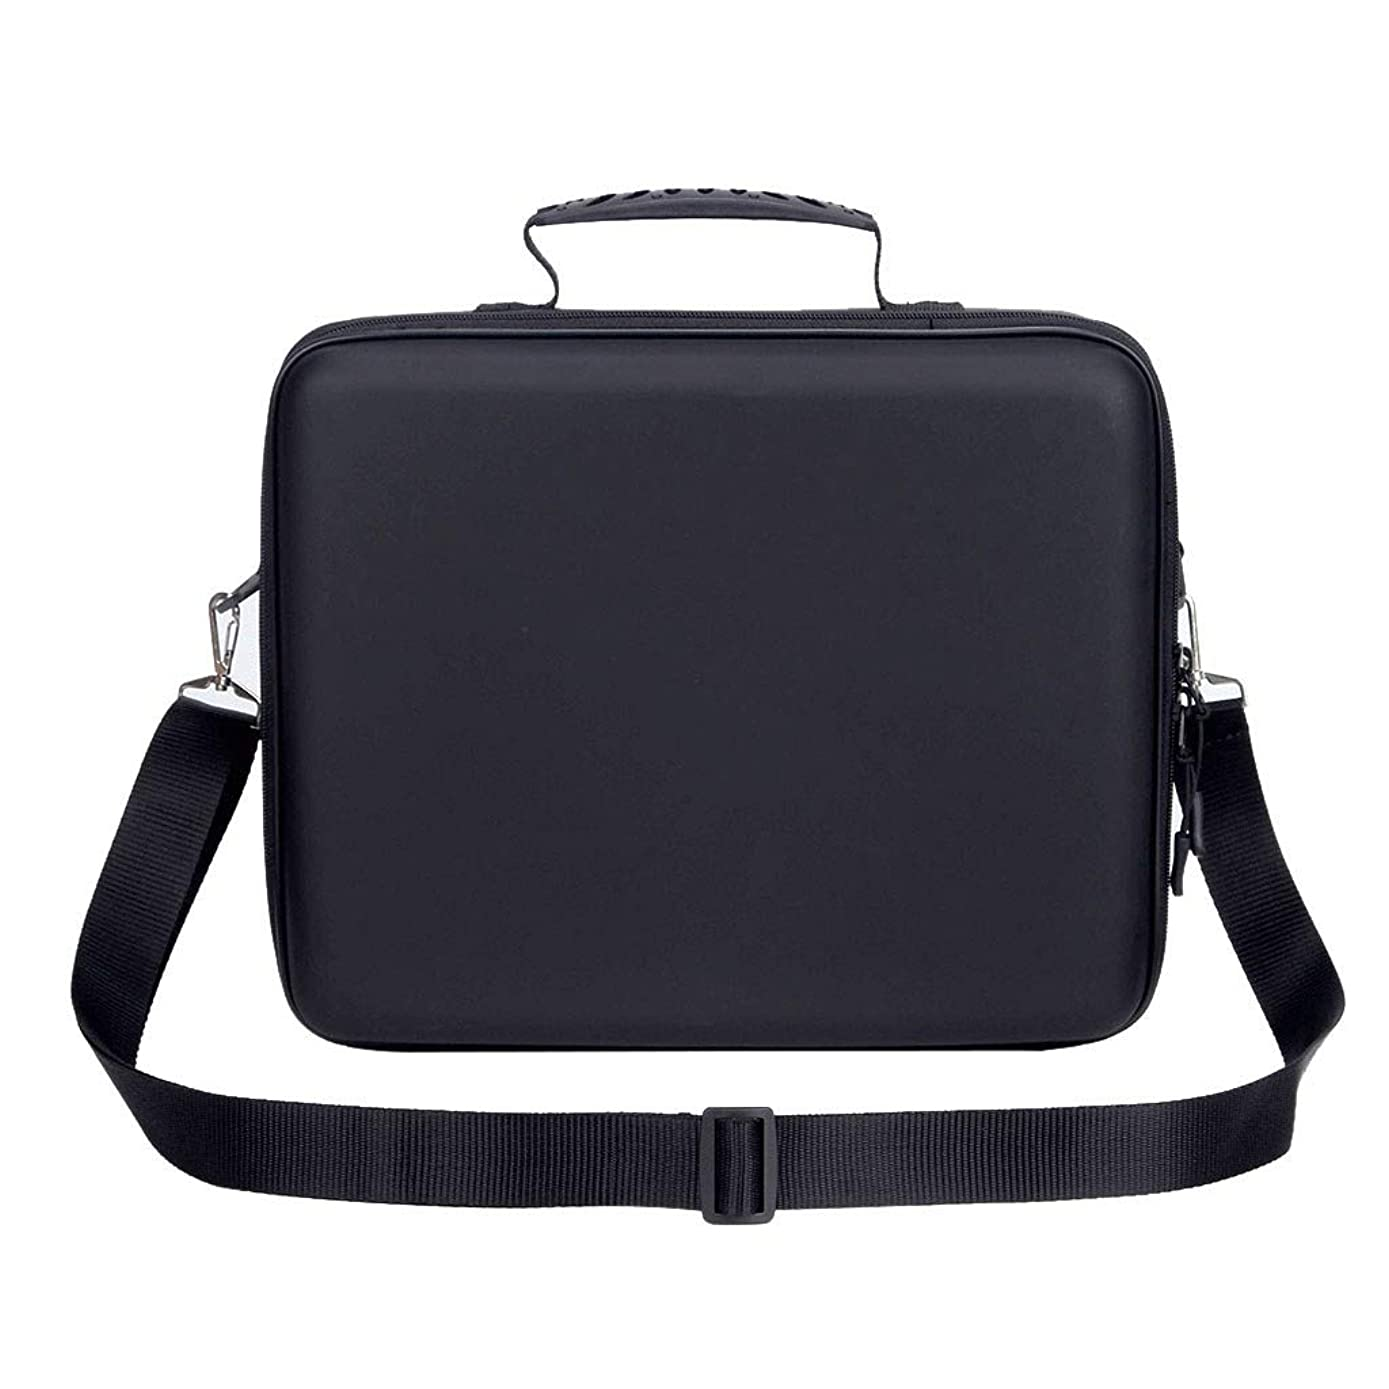 KAKALOR Waterproof Portable One Shoulder Storage Bag Carry Case for Hubsan H117S Zino (Shipped from The US) (Black)